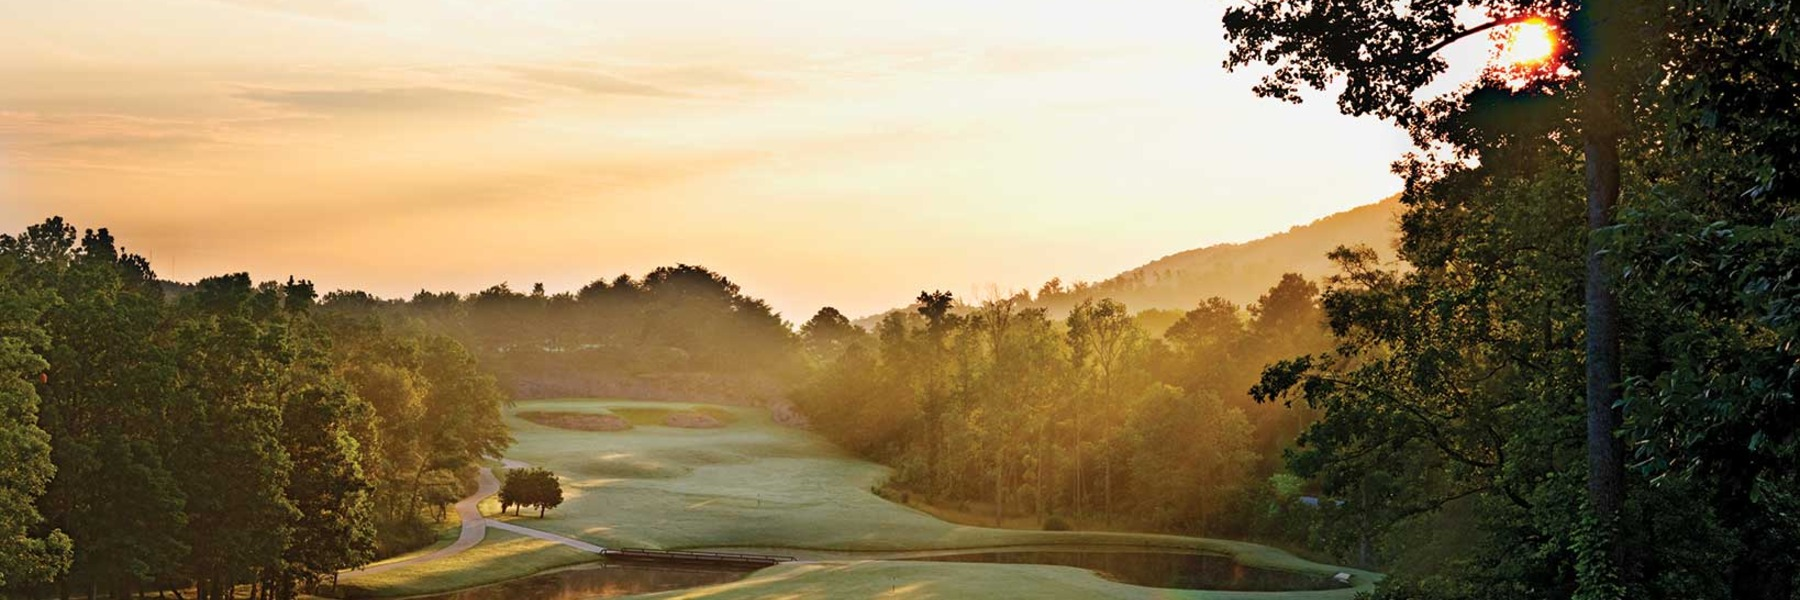 Golf Vacation Package - RTJ Golf Trail - Auburn Special for $150 per person, per day!